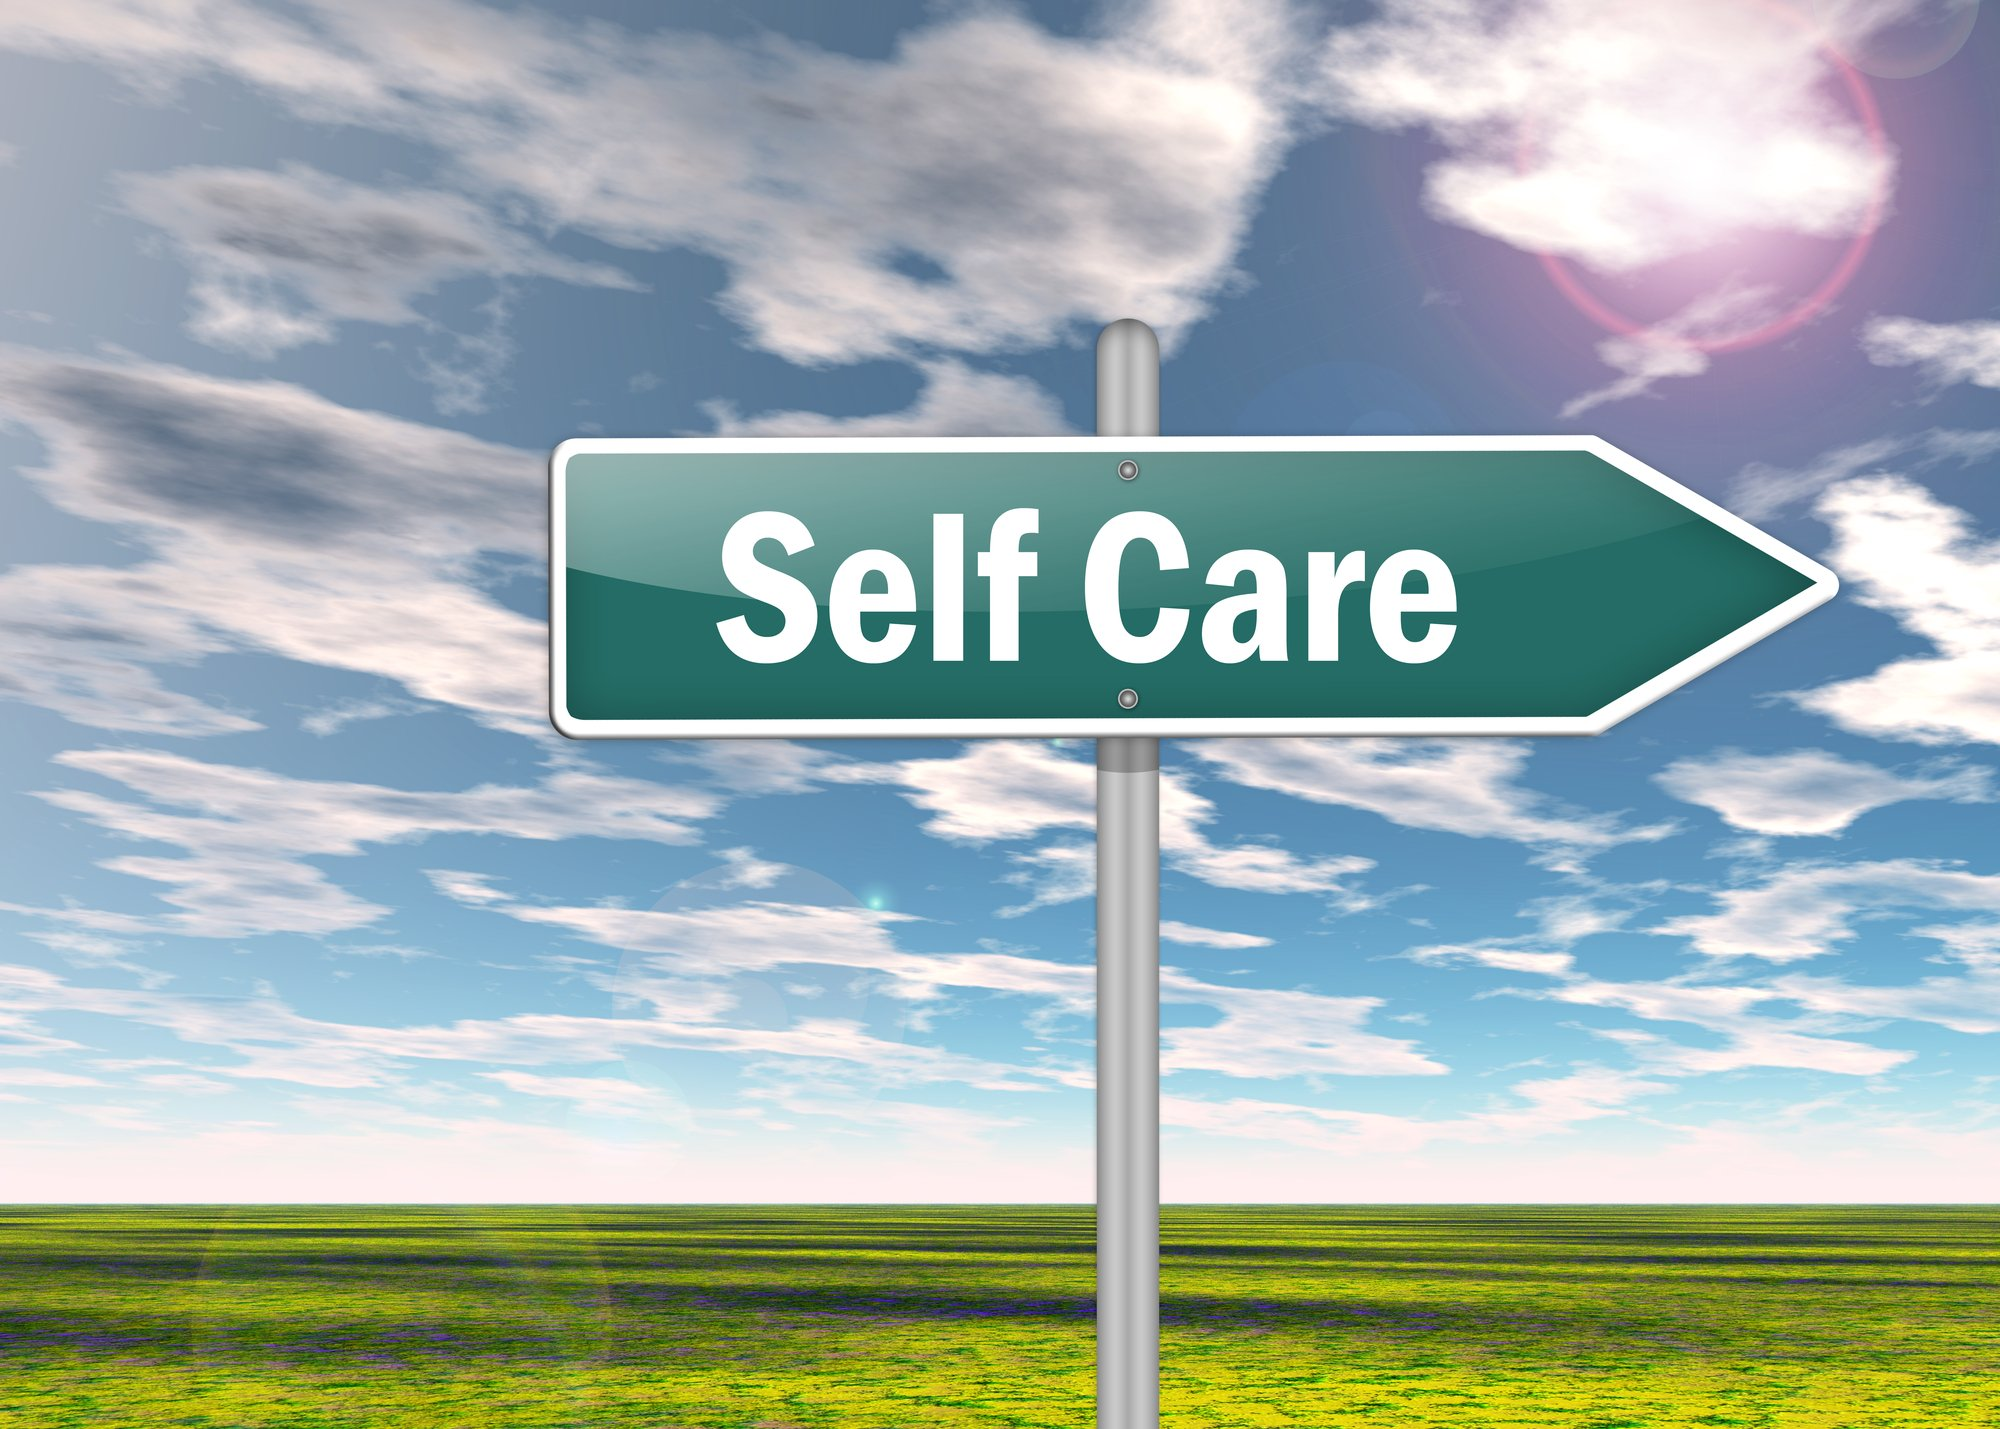 Find it hard to take self-care time – me too!!